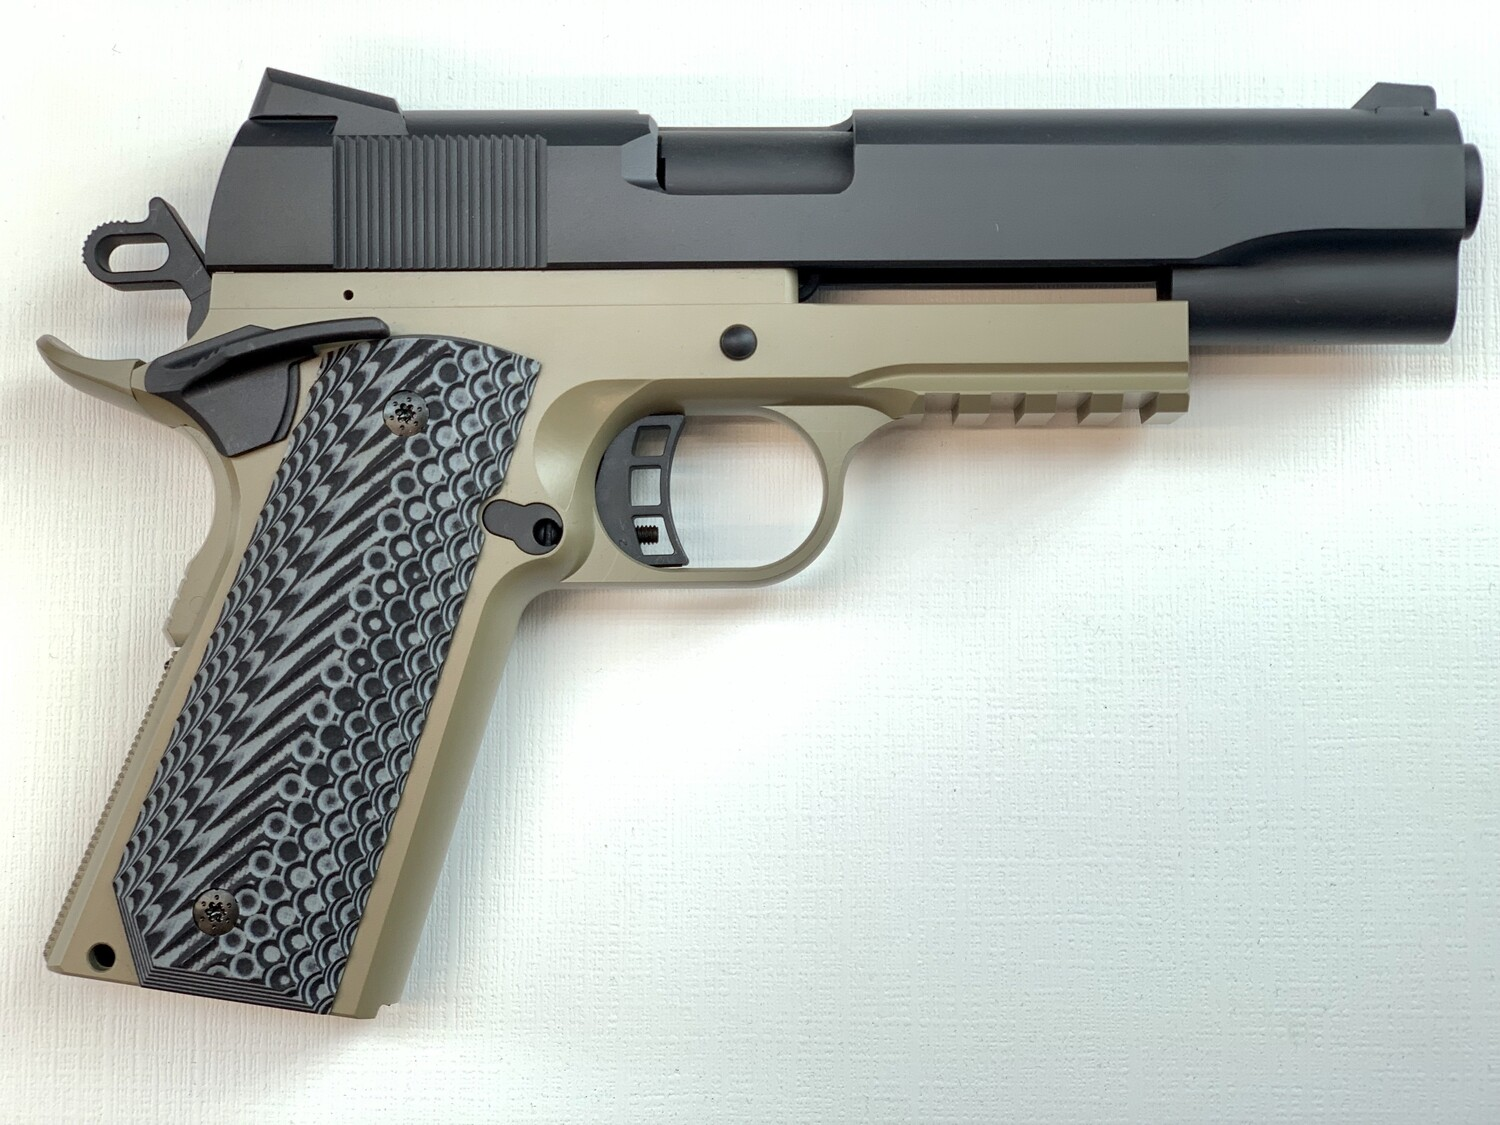 1911 Tactical Full Size 80% Builders Kit FDE / BLK: Choice of .45 ACP - 9mm - 10mm - 40 Cal